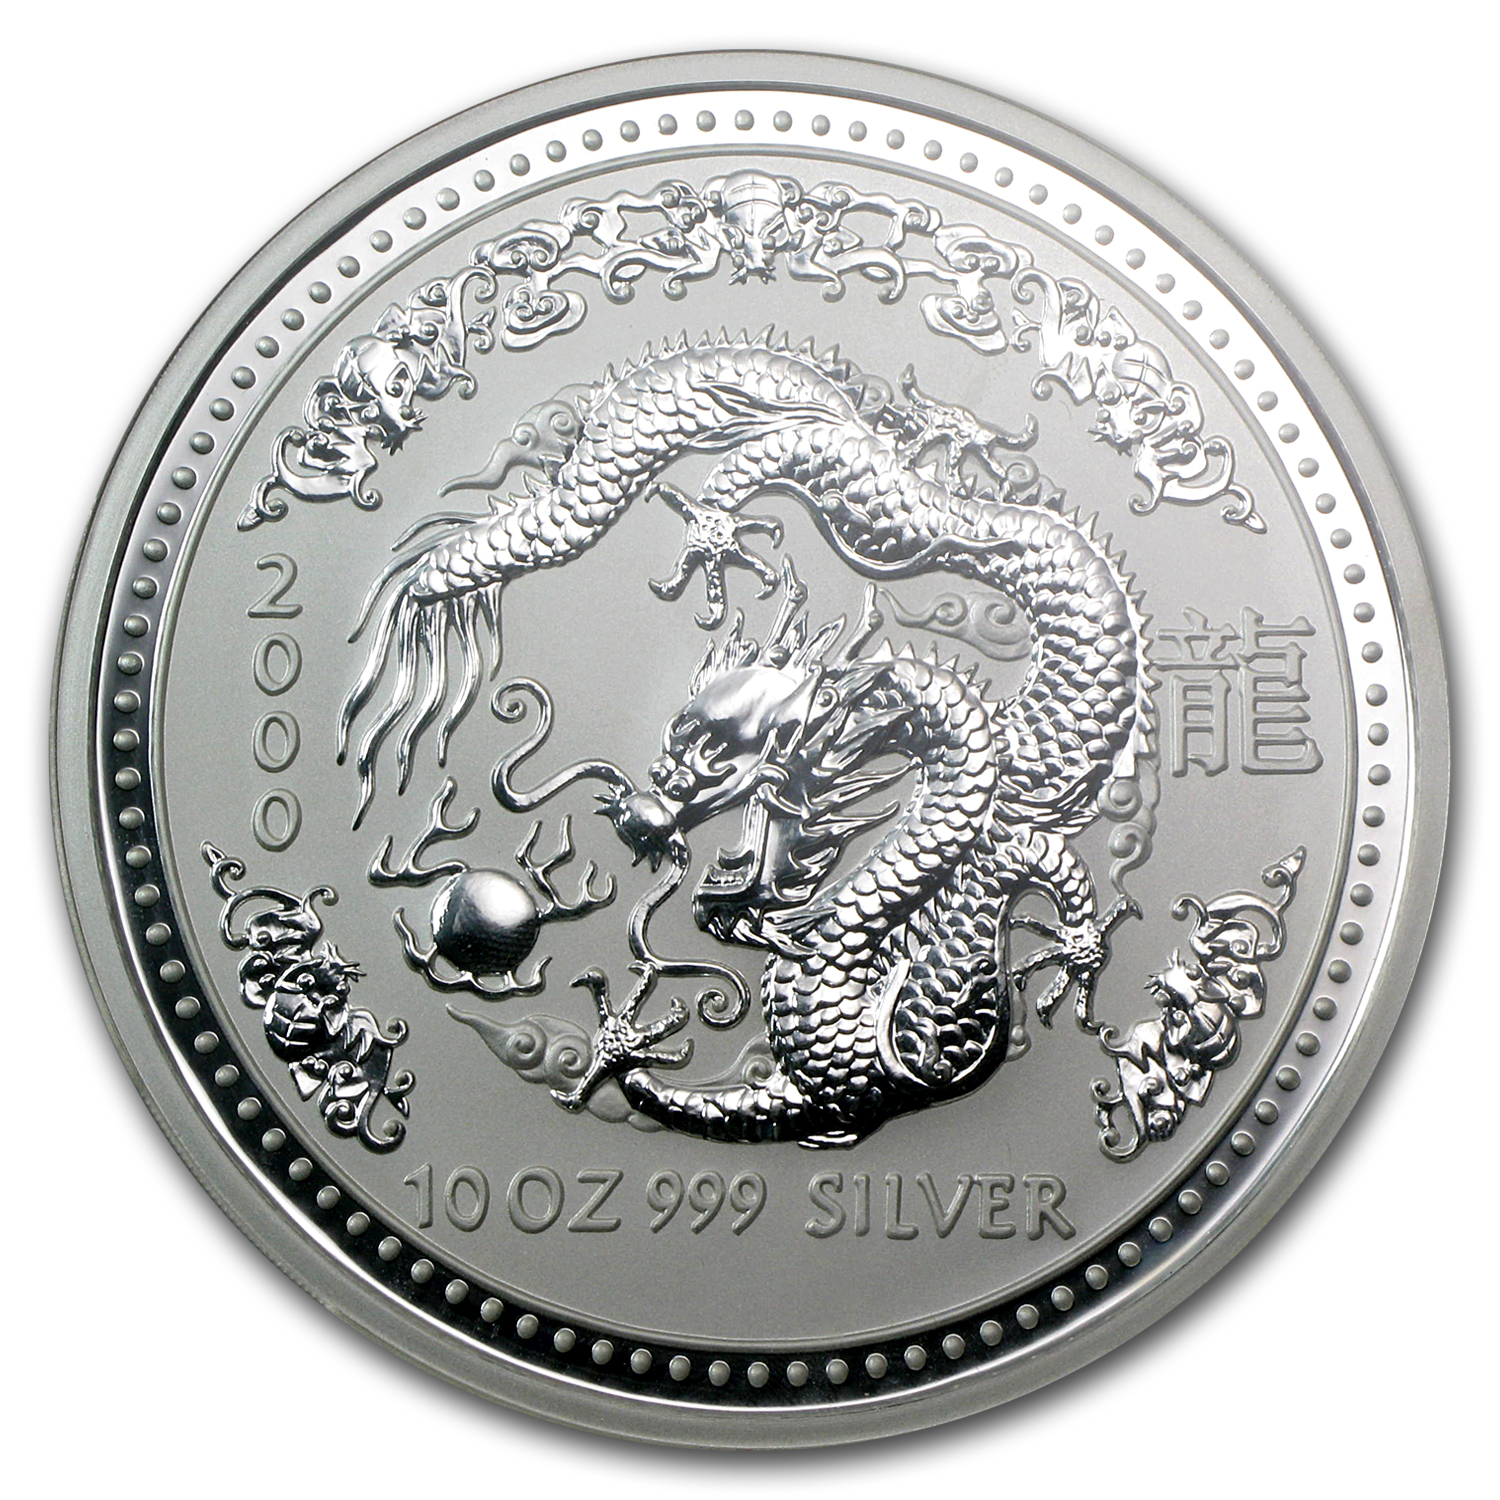 2000 10 oz Silver Australian Year of the Dragon MS-68 NGC